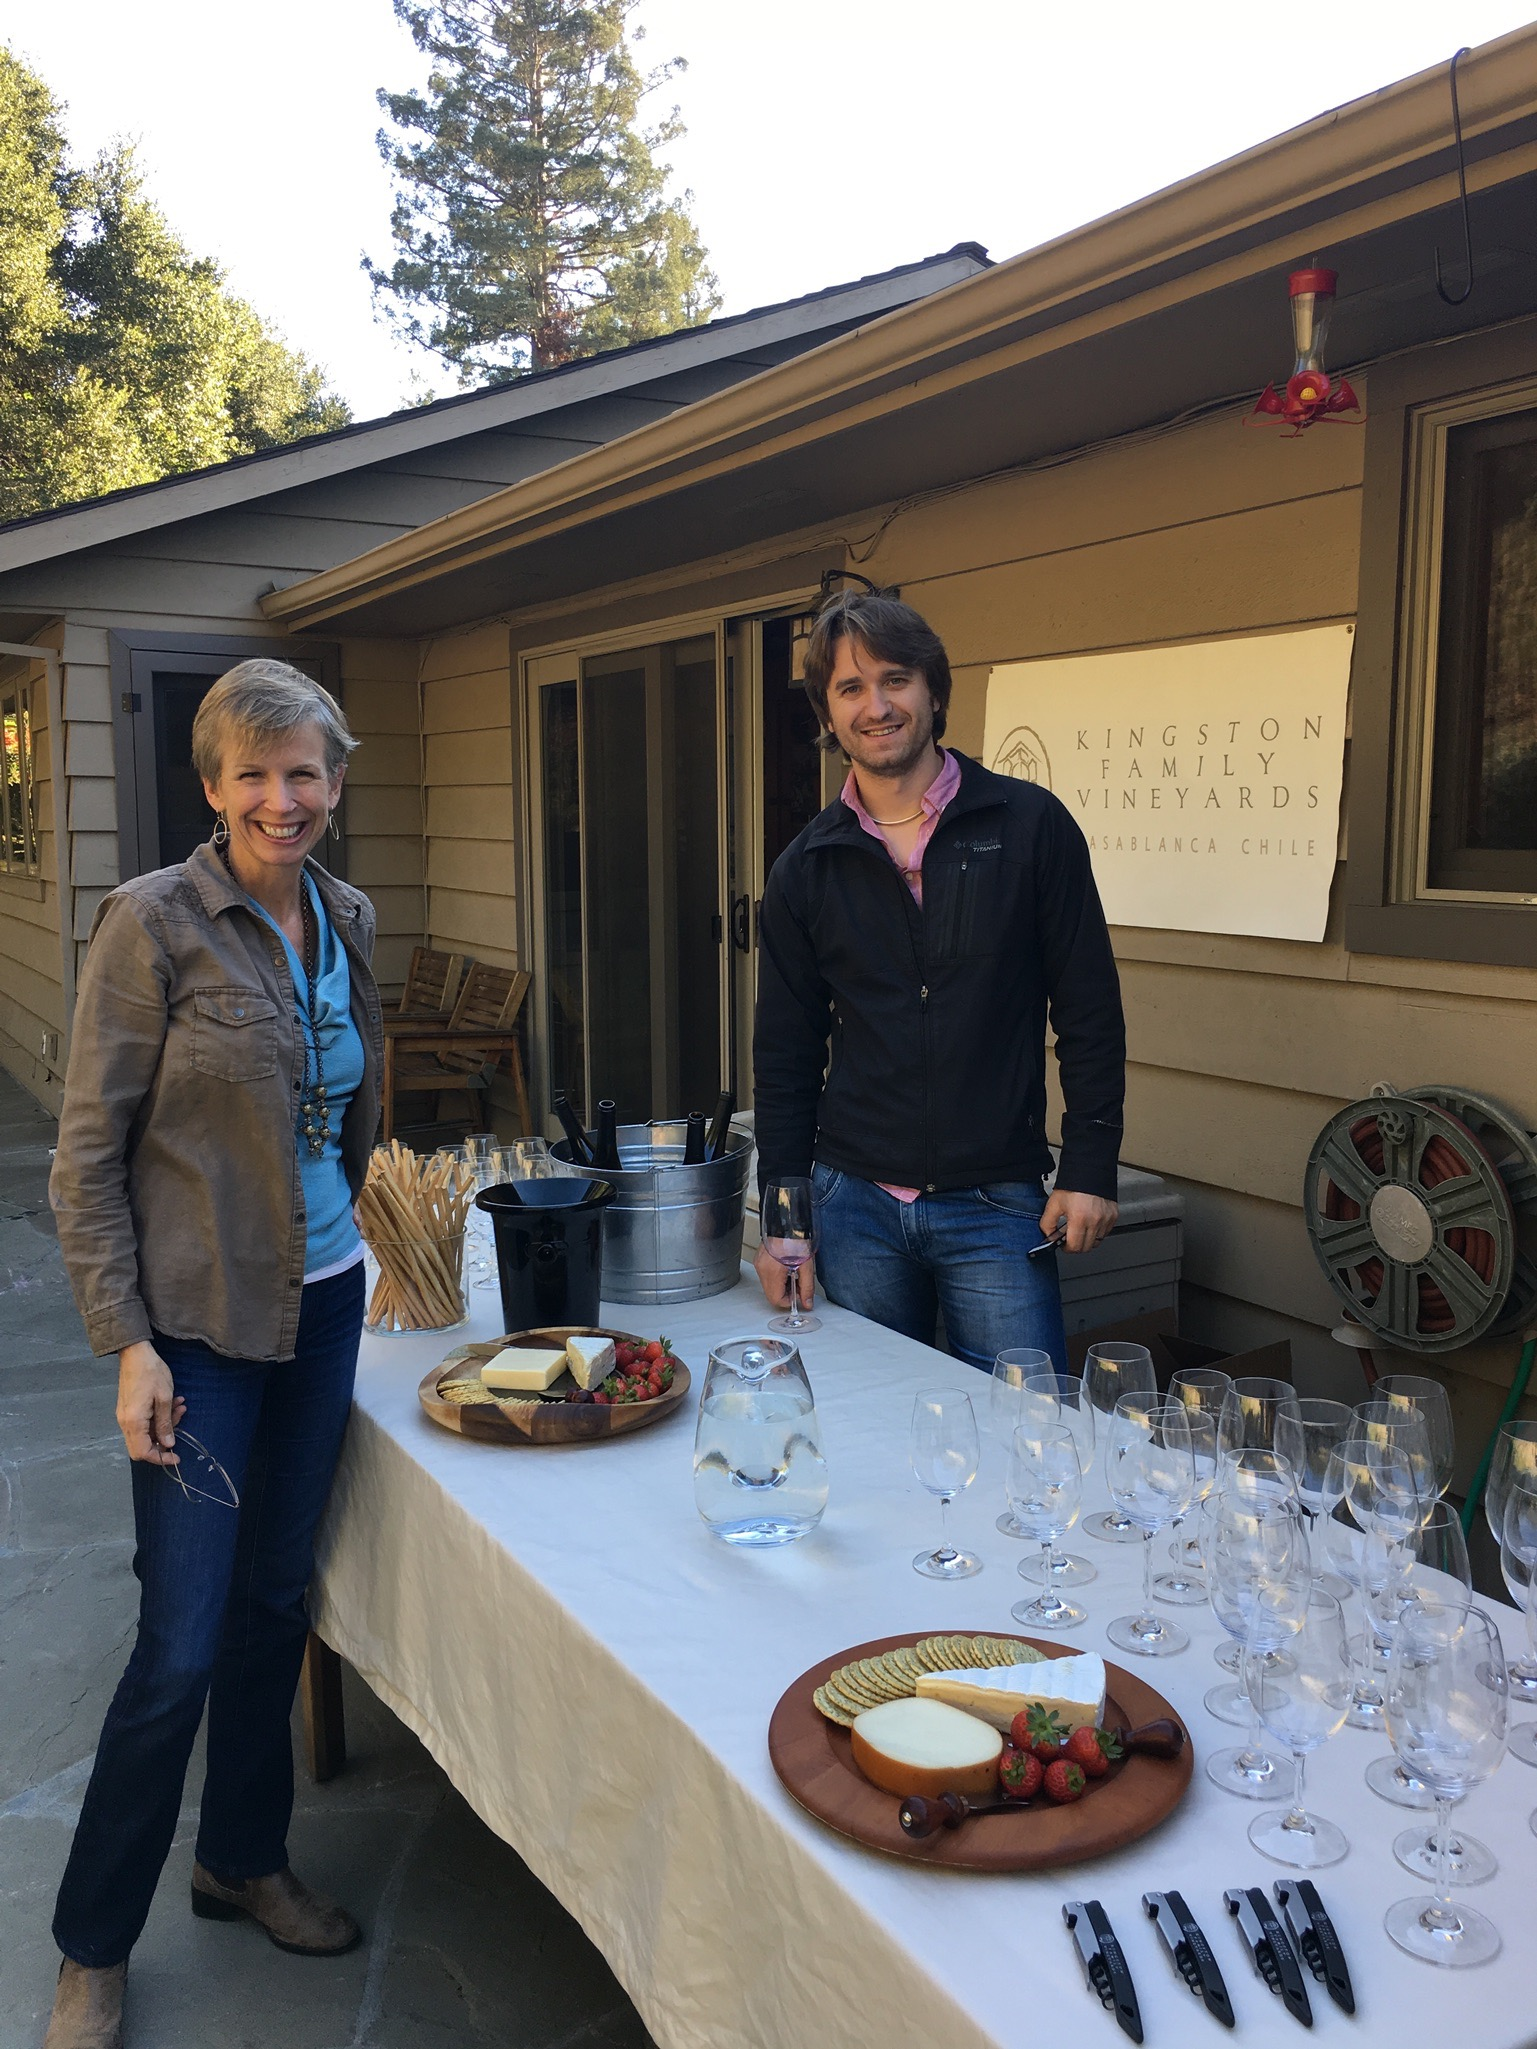 Amael with Courtney at last week's Old Corral Club tasting in Portola Valley